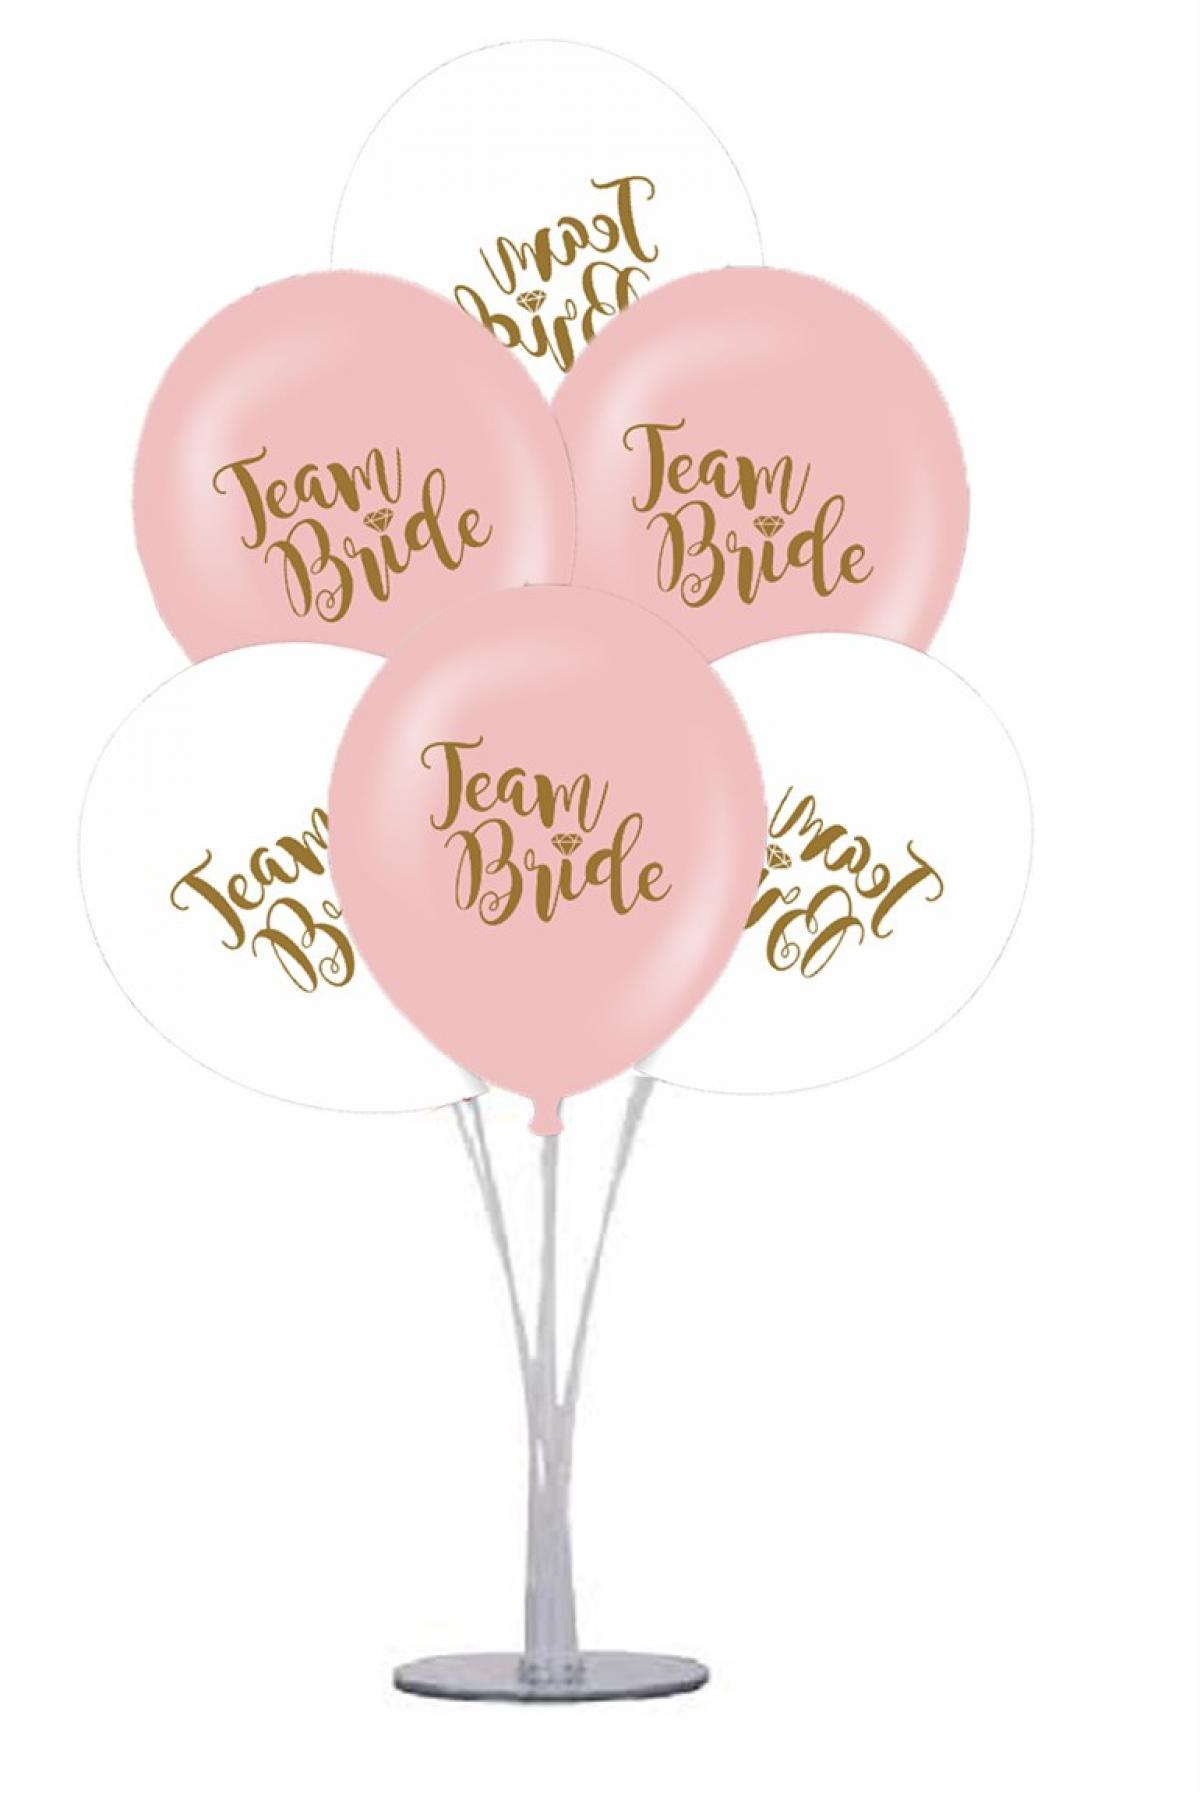 7 li Balon Demeti Team Bride Balon